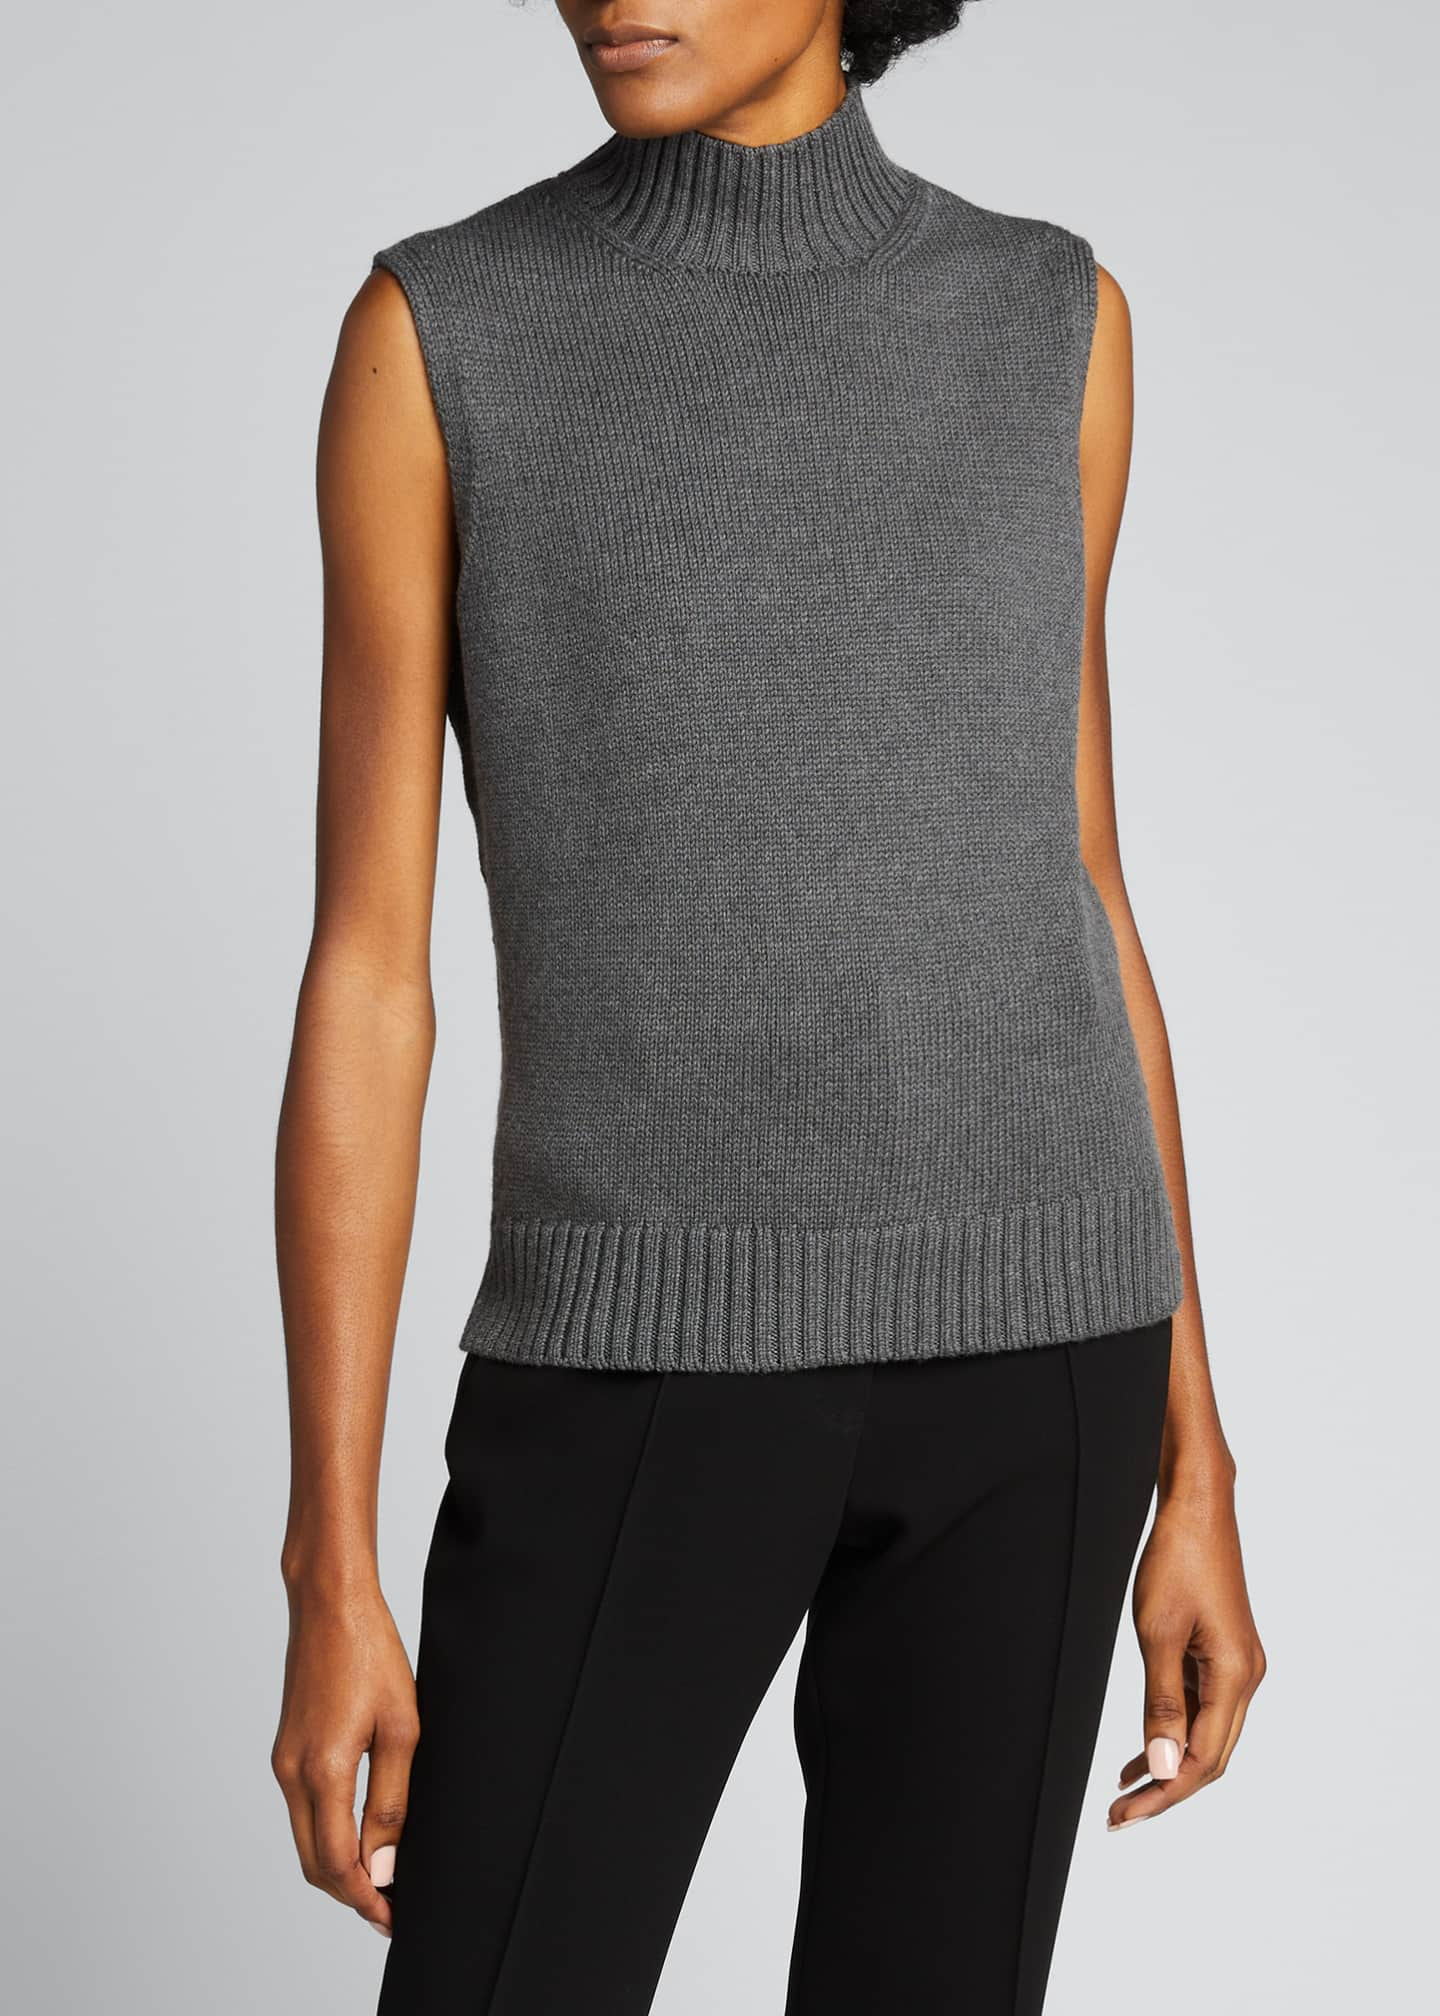 Image 3 of 5: Lofty Italian Virgin Wool Sleeveless Turtleneck Top